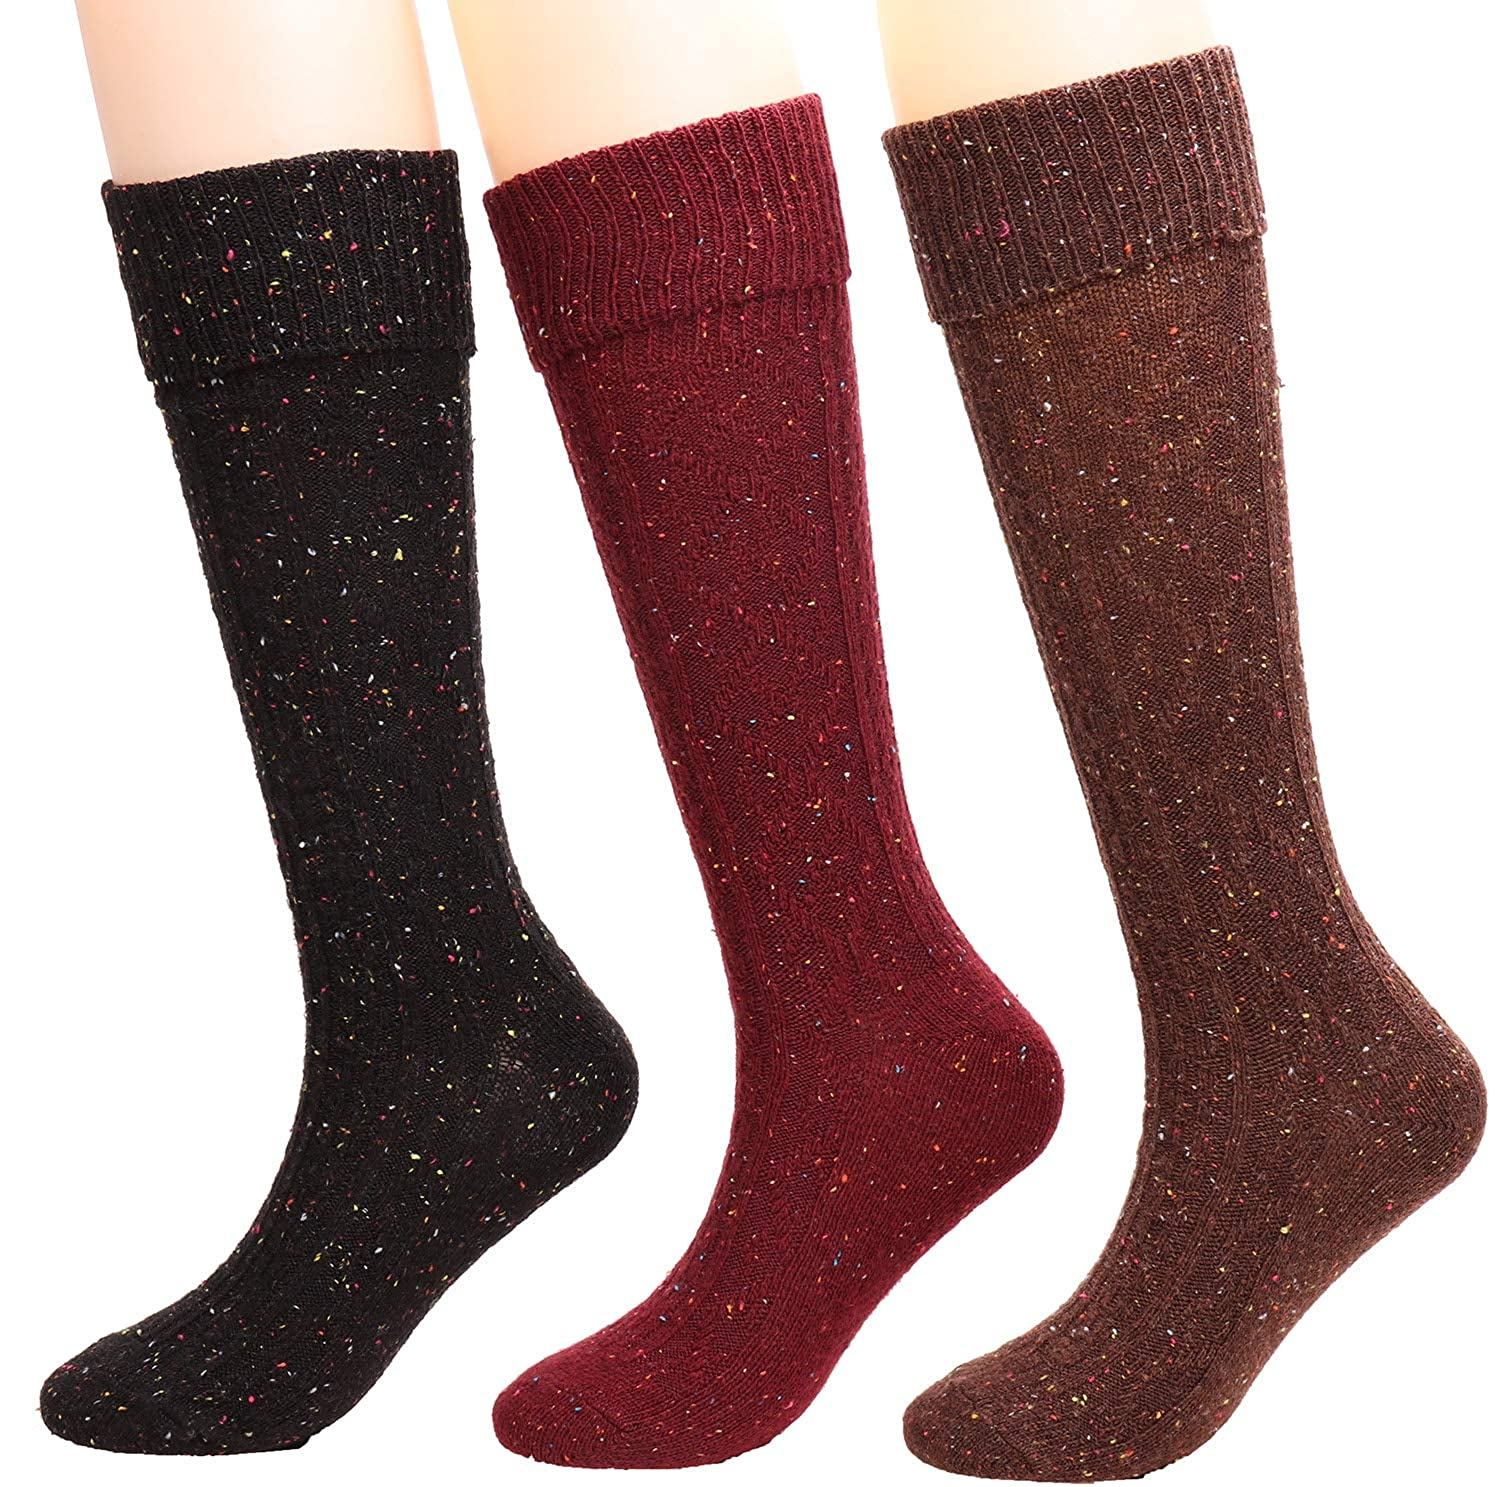 875b86e733dad 3 Pairs Womens Fall Winter Knee High Sock Wool Knit Mid Calf Boot Socks W80  (red+black+coffee) at Amazon Women's Clothing store: